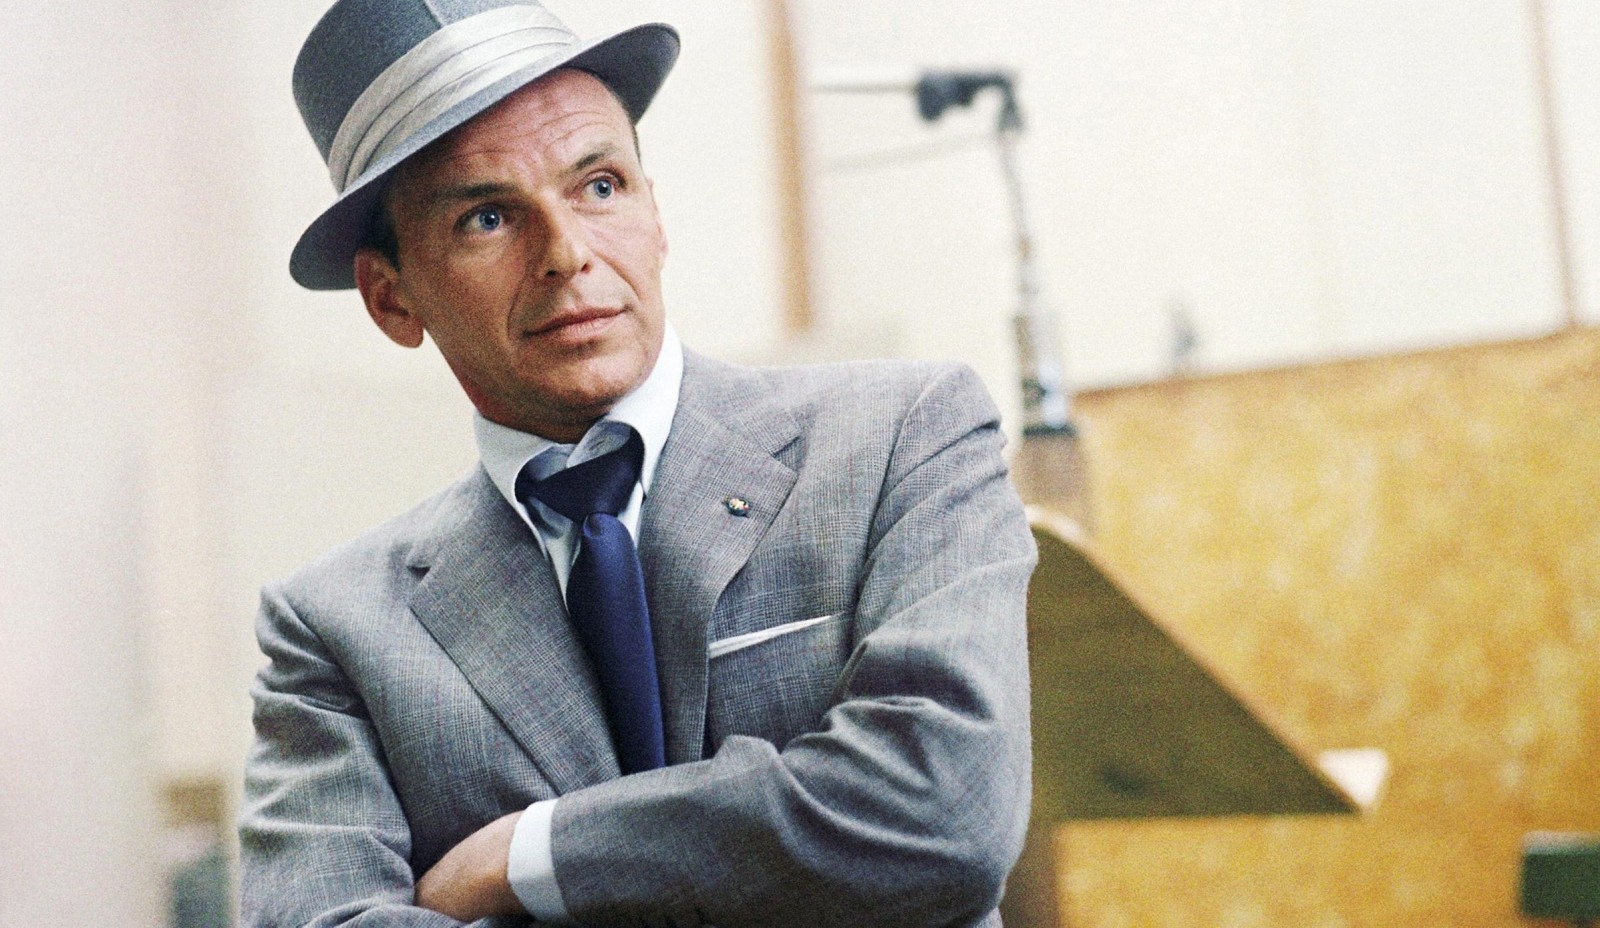 Frank Sinatra hangs out in Capitol Records in Los Angeles, Calif., in 1954. (HBO)